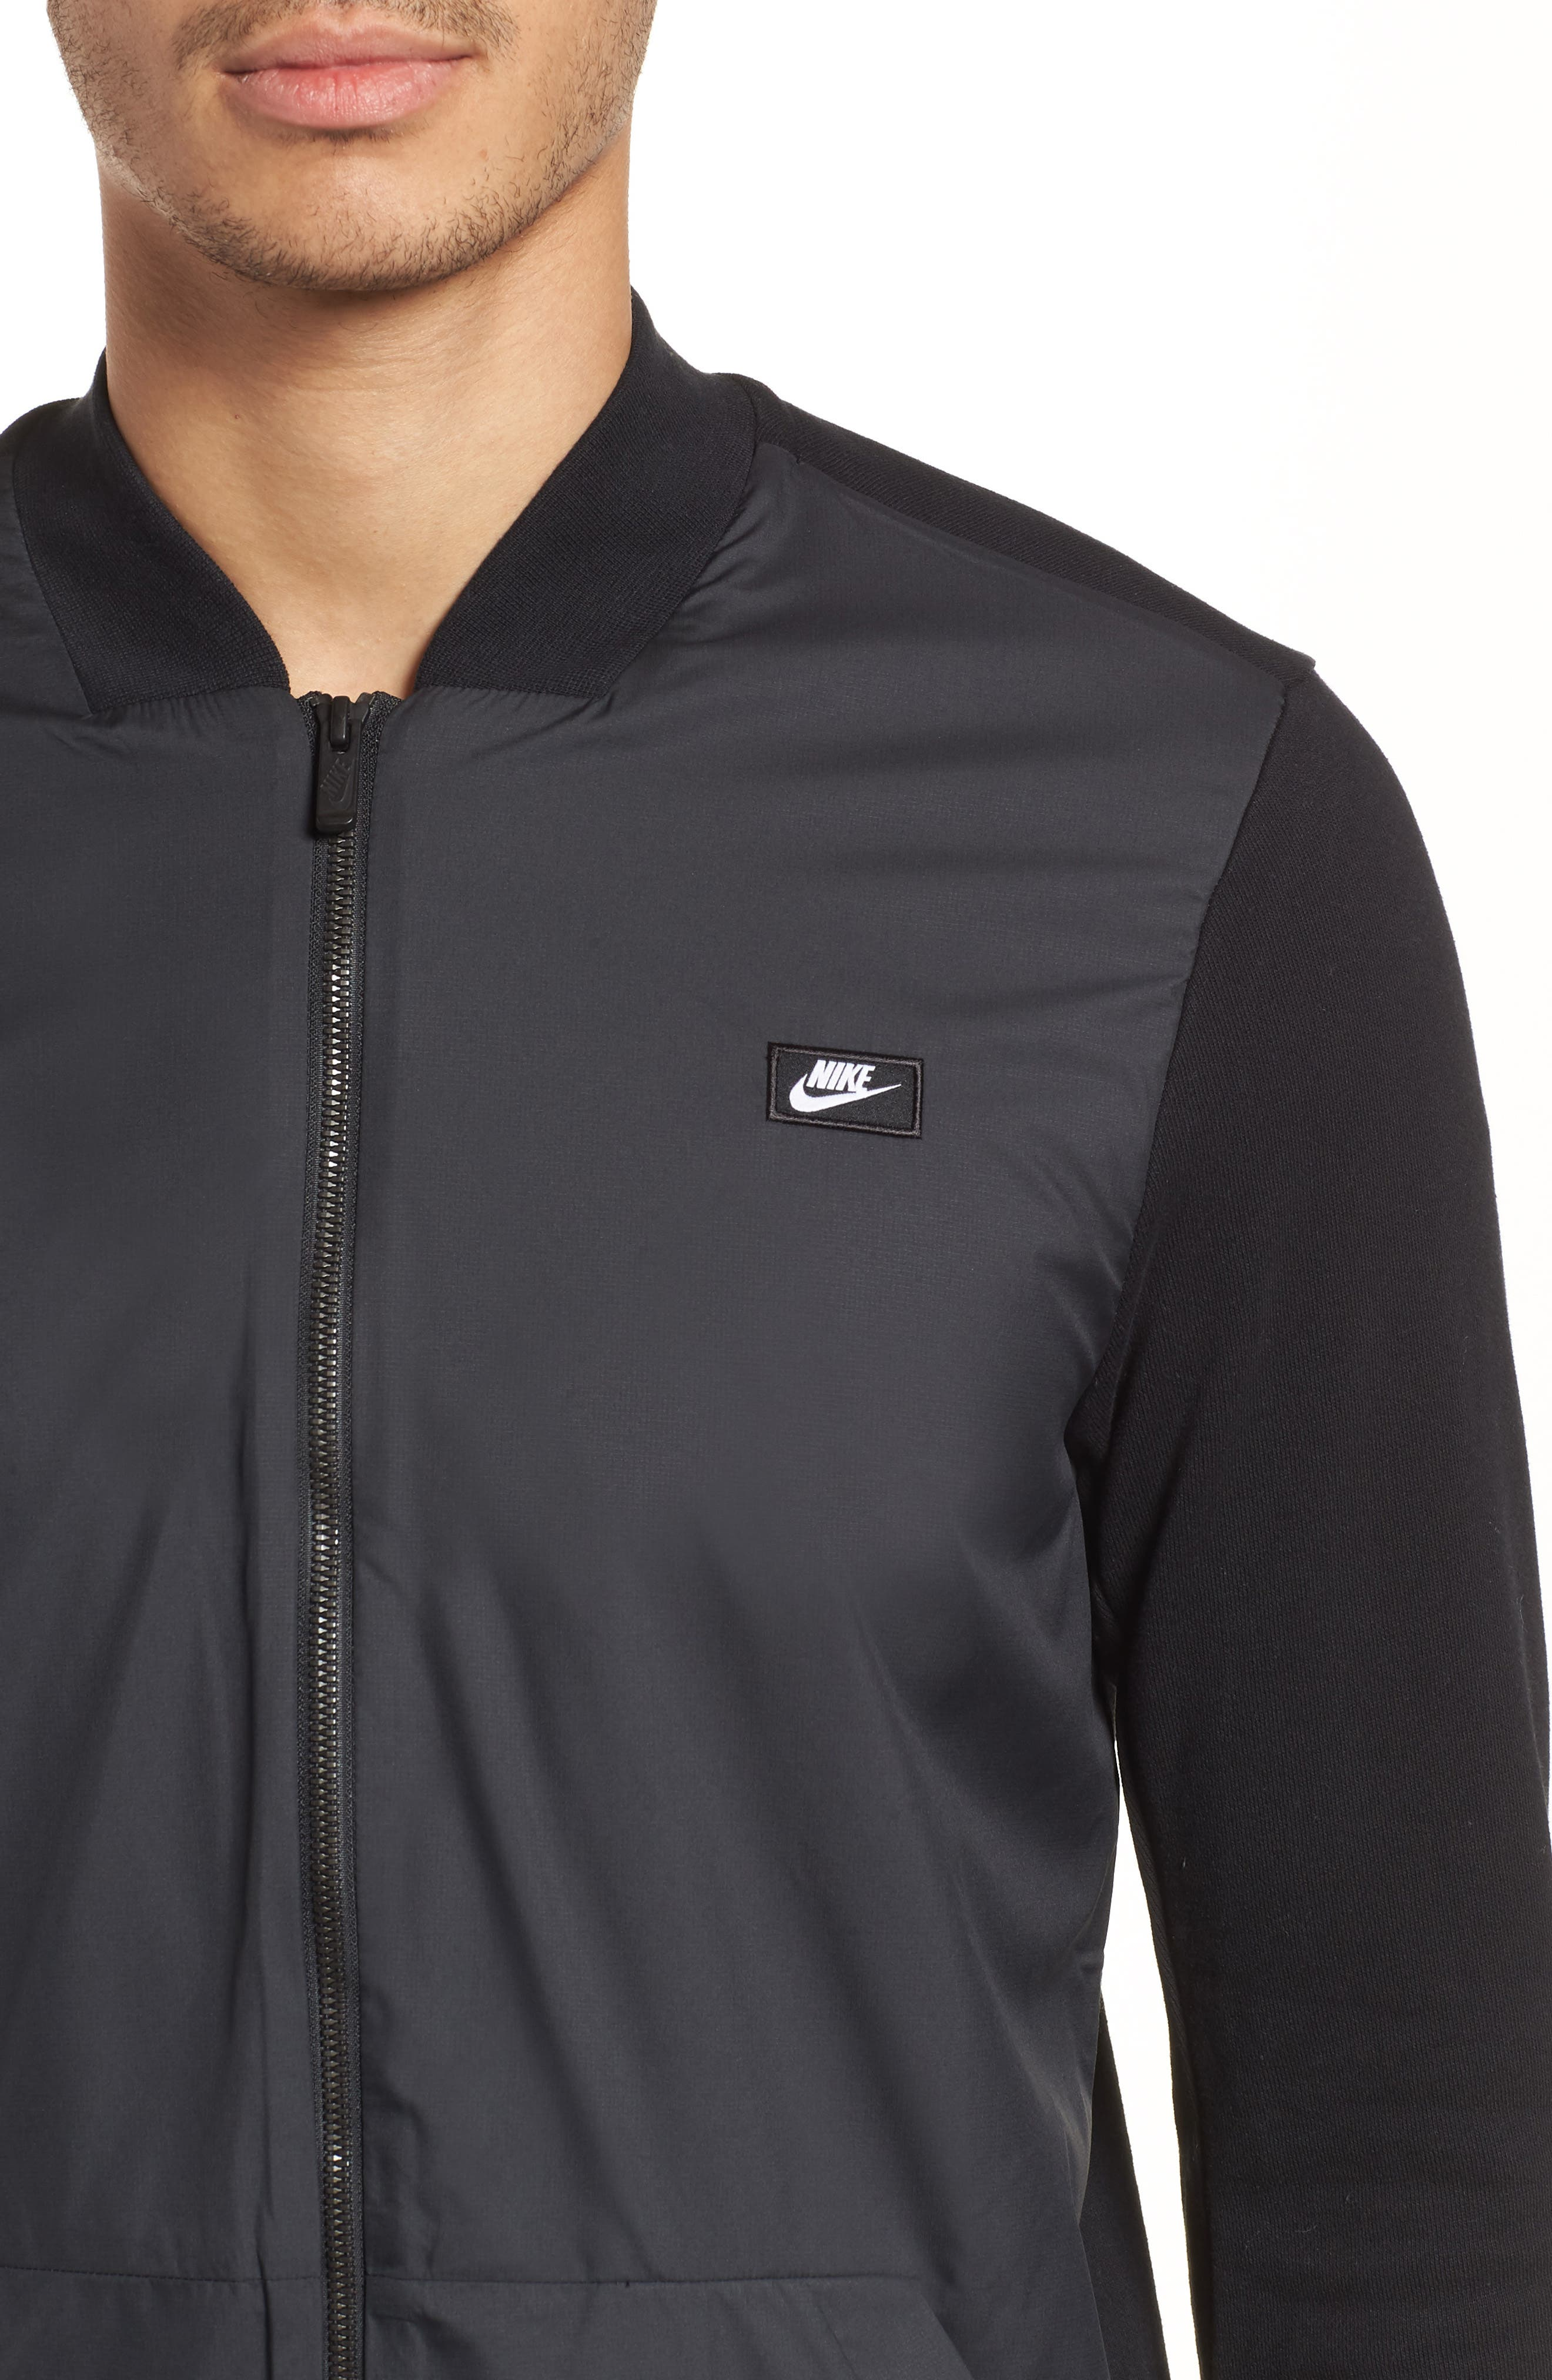 NSW Modern Track Jacket,                             Alternate thumbnail 4, color,                             010